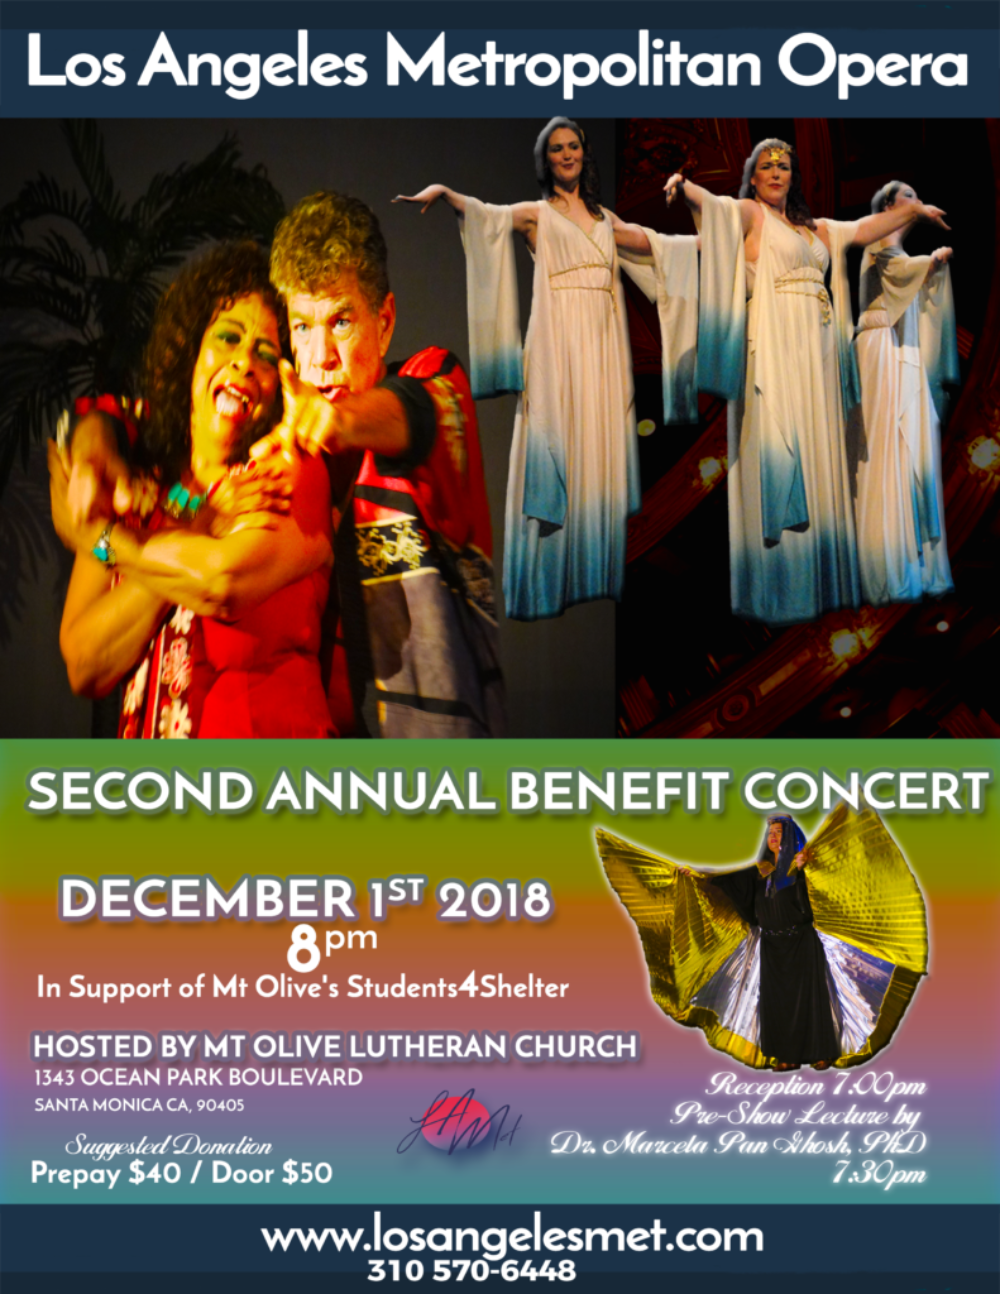 2nd Annual Concert Poster